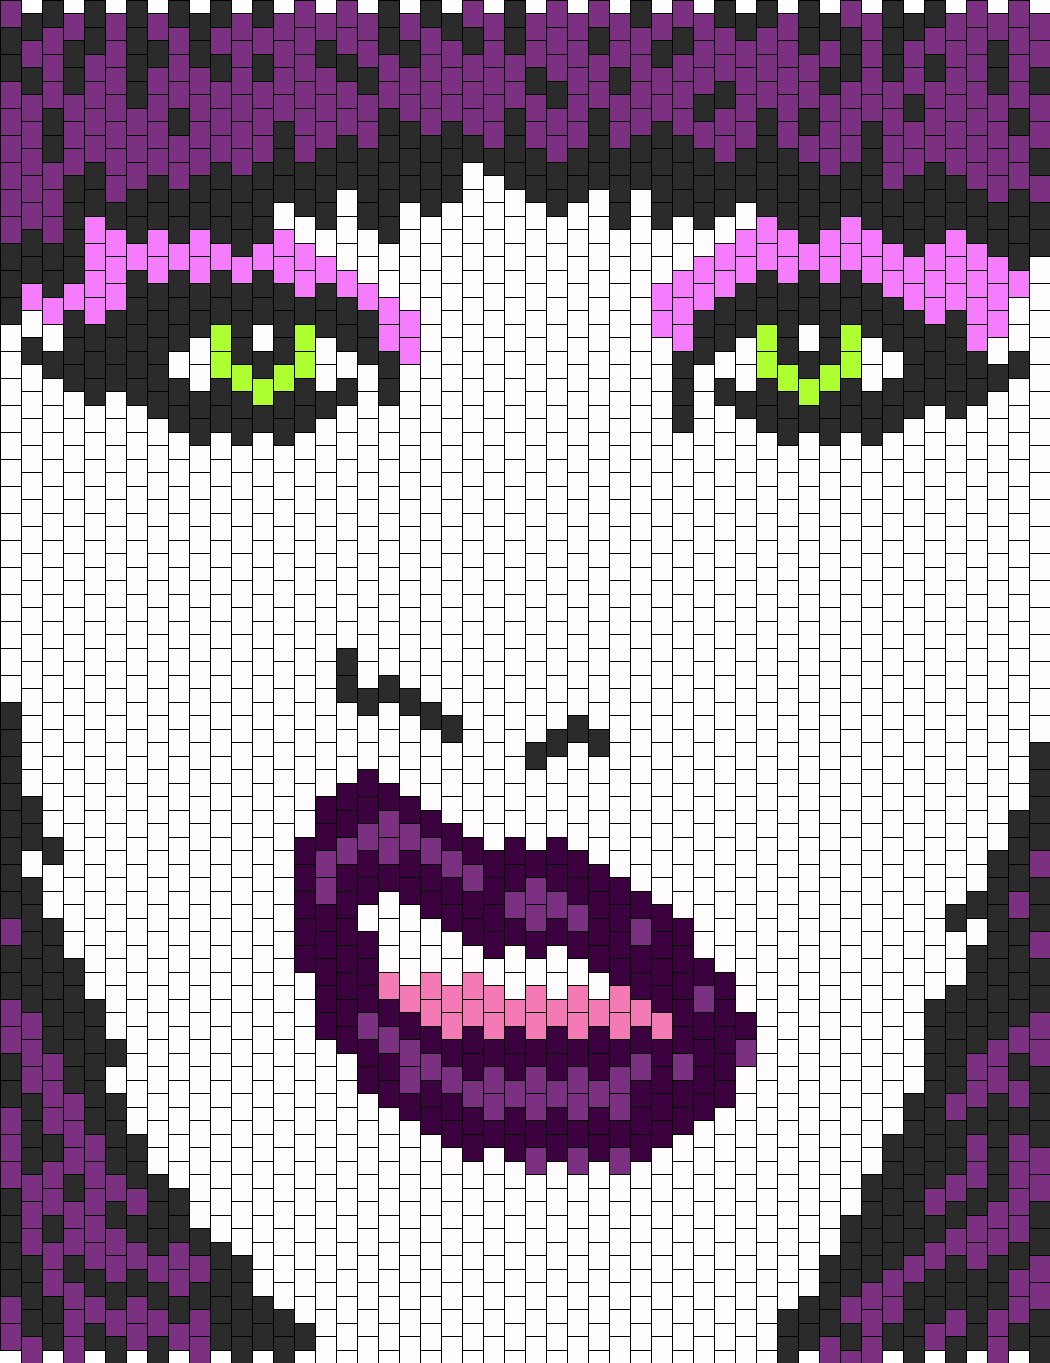 Sharon_Needles_in_purple